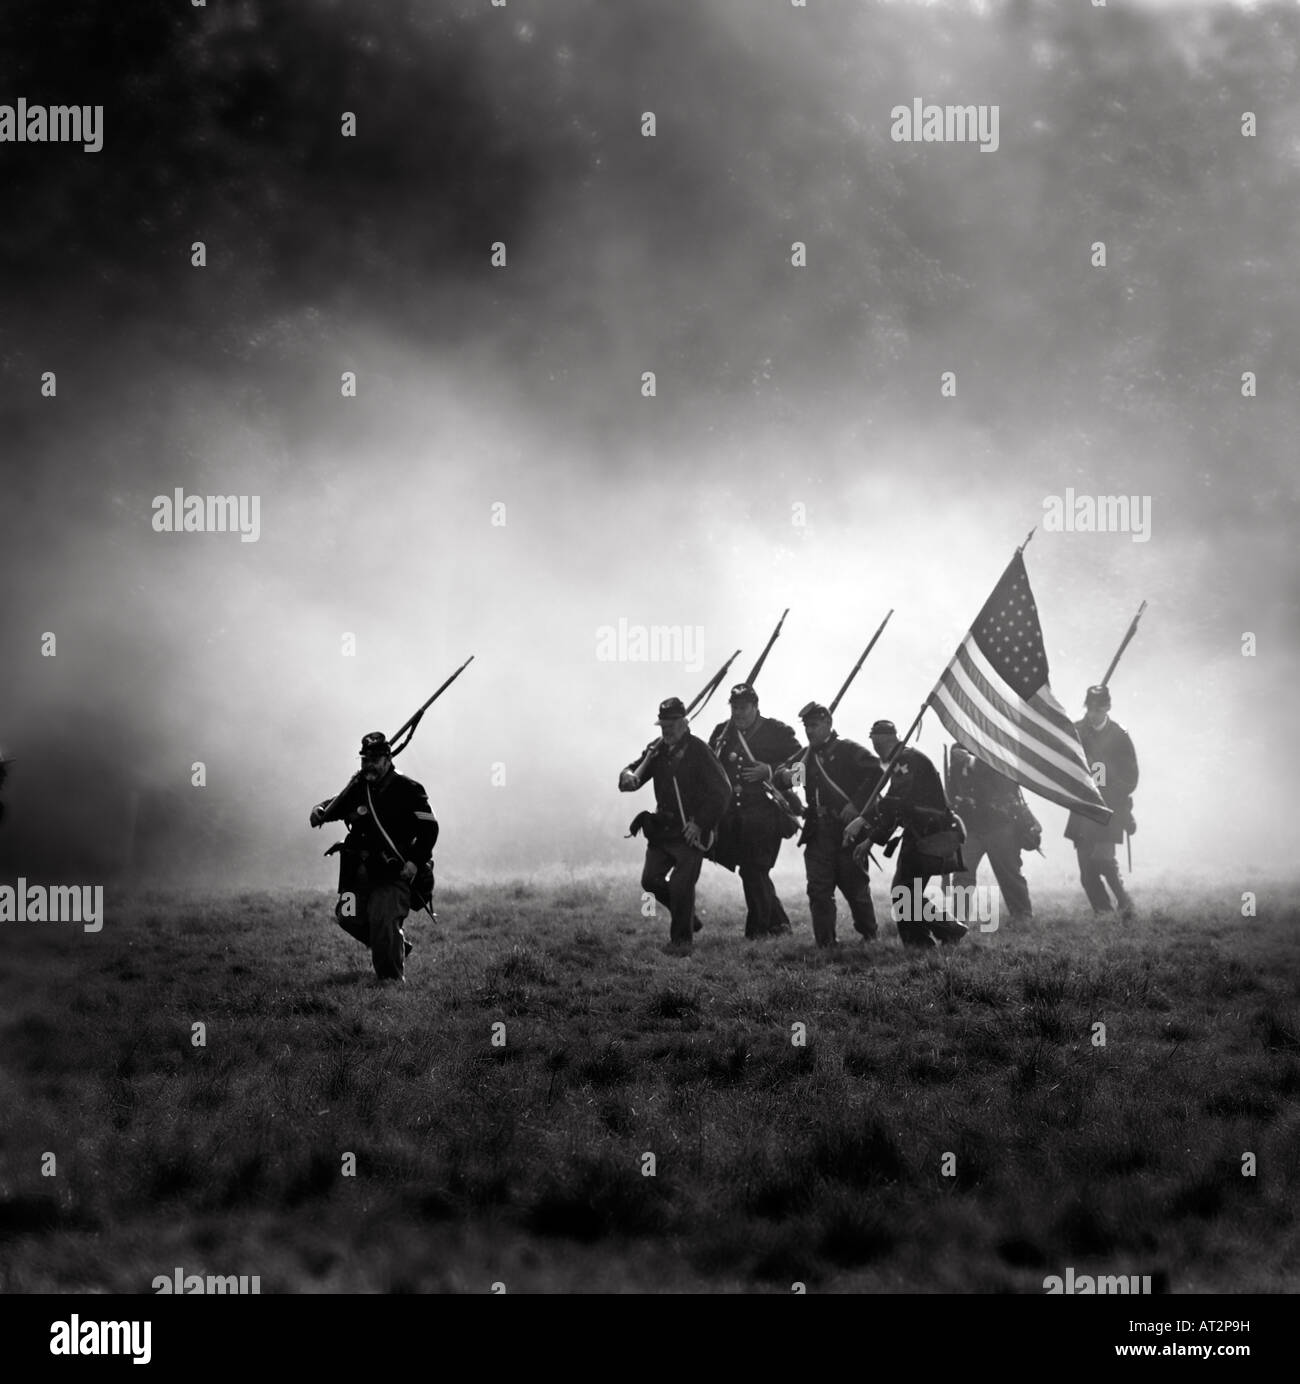 American Civil War re-enactment The Union soldiers move under cover of battle smoke. FOR EDITORIAL USE ONLY. - Stock Image